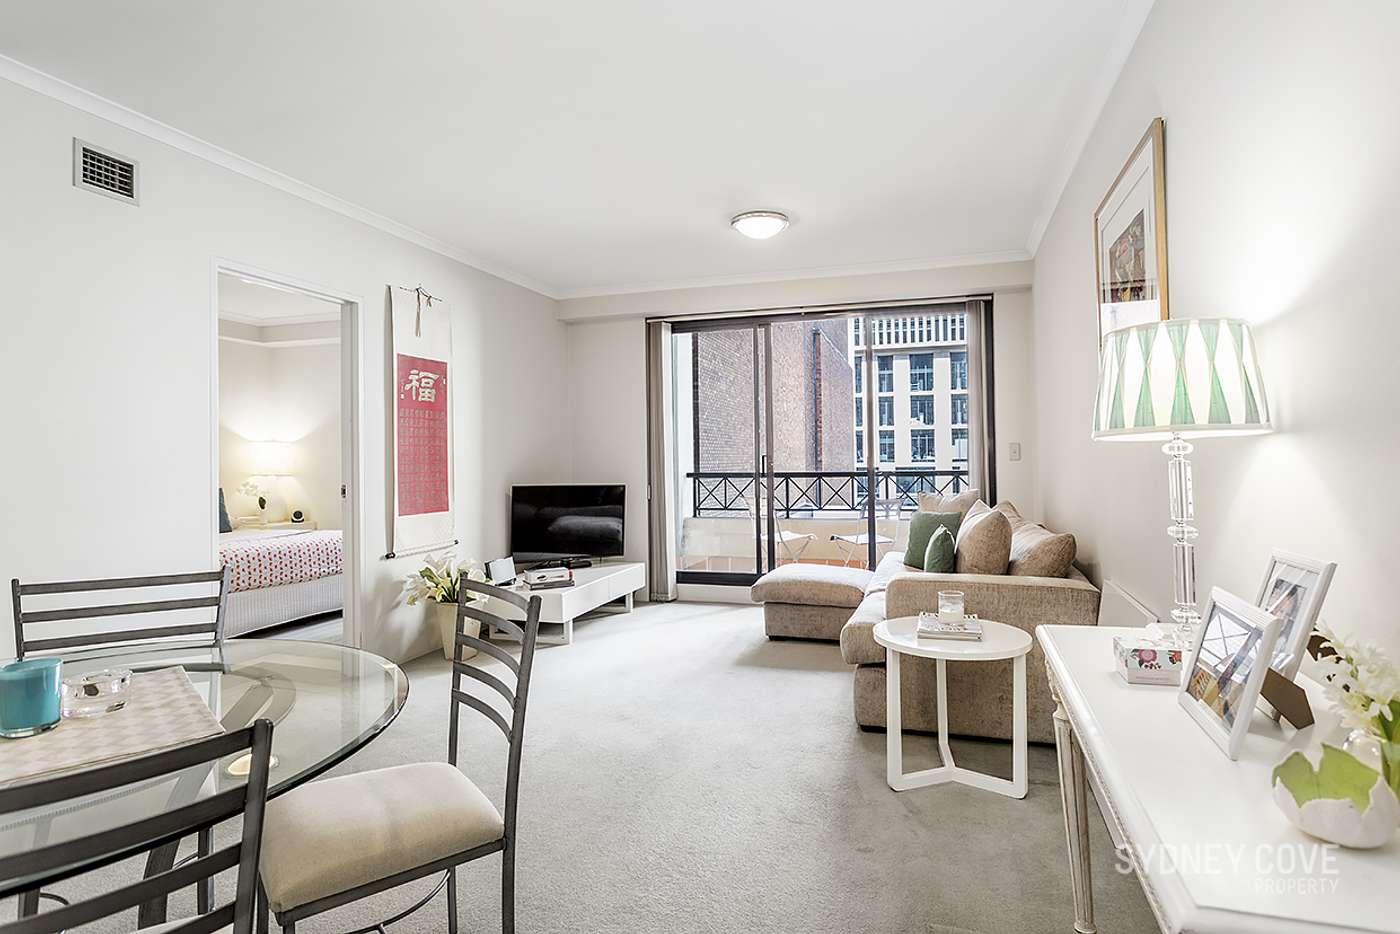 Main view of Homely apartment listing, 1 Hosking Pl, Sydney NSW 2000